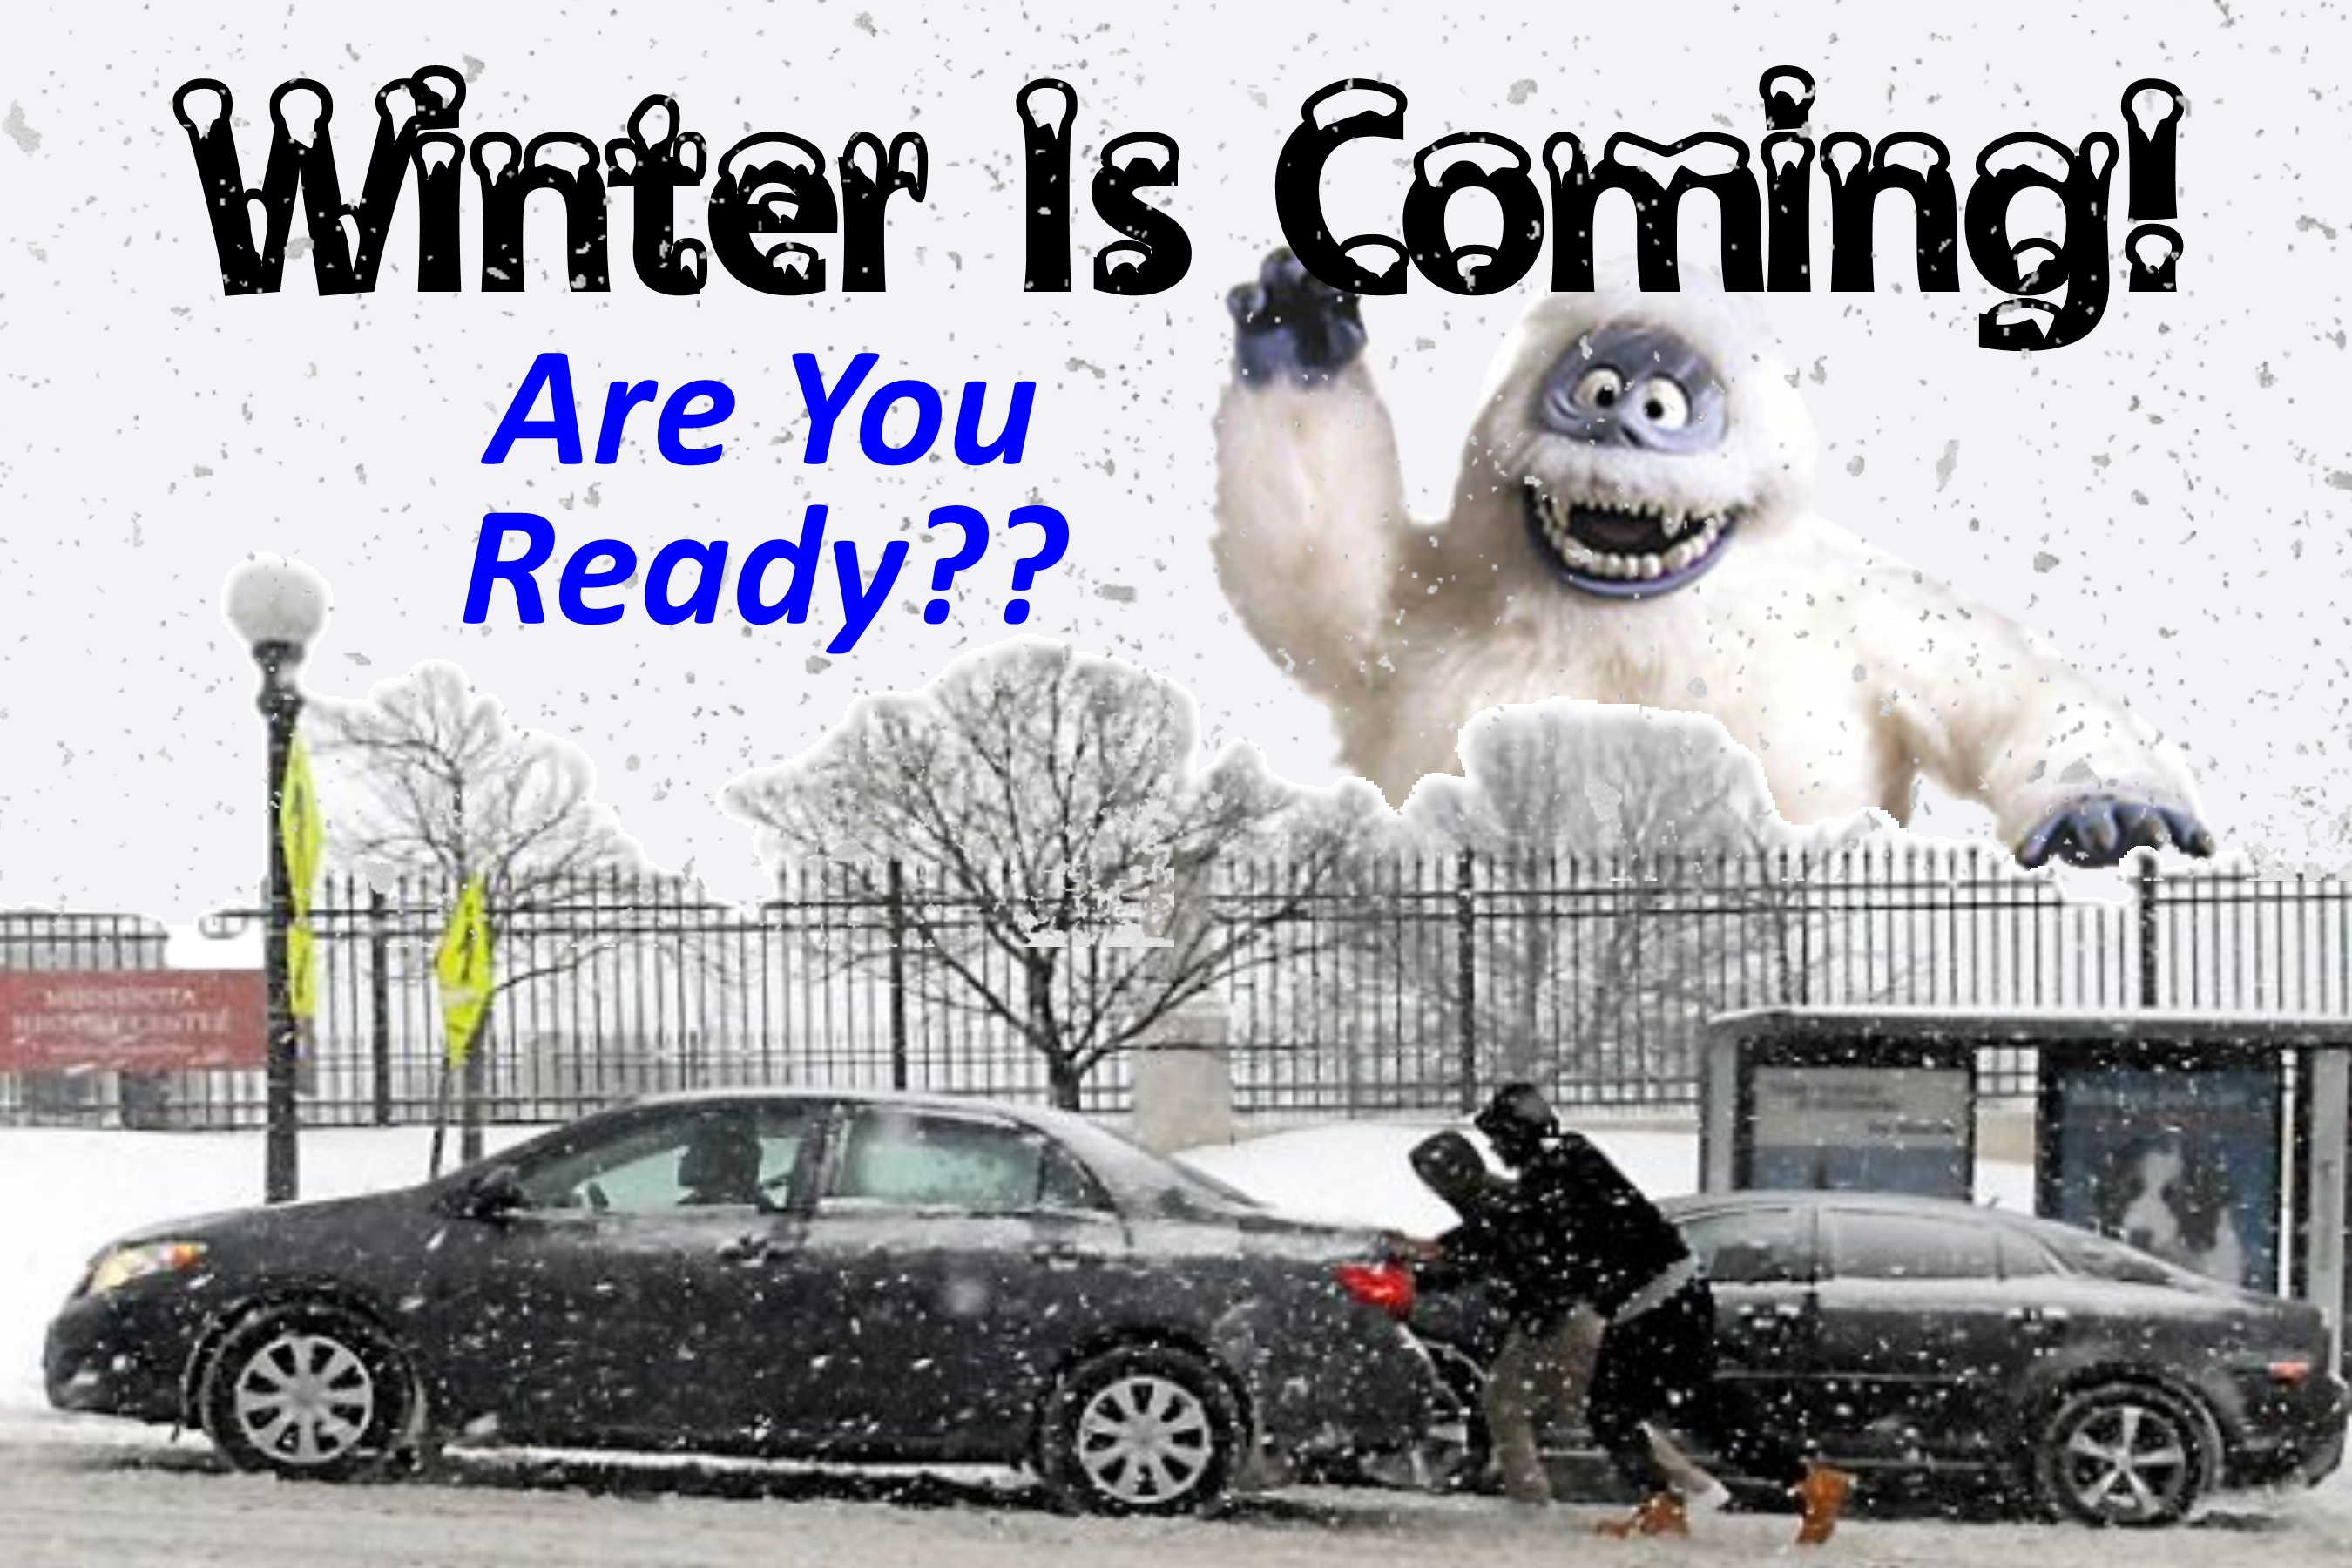 Winter Is Coming Elizabeth Auto Care Tires Batteries Antifreeze Wiper Blades Elizabeth Pa